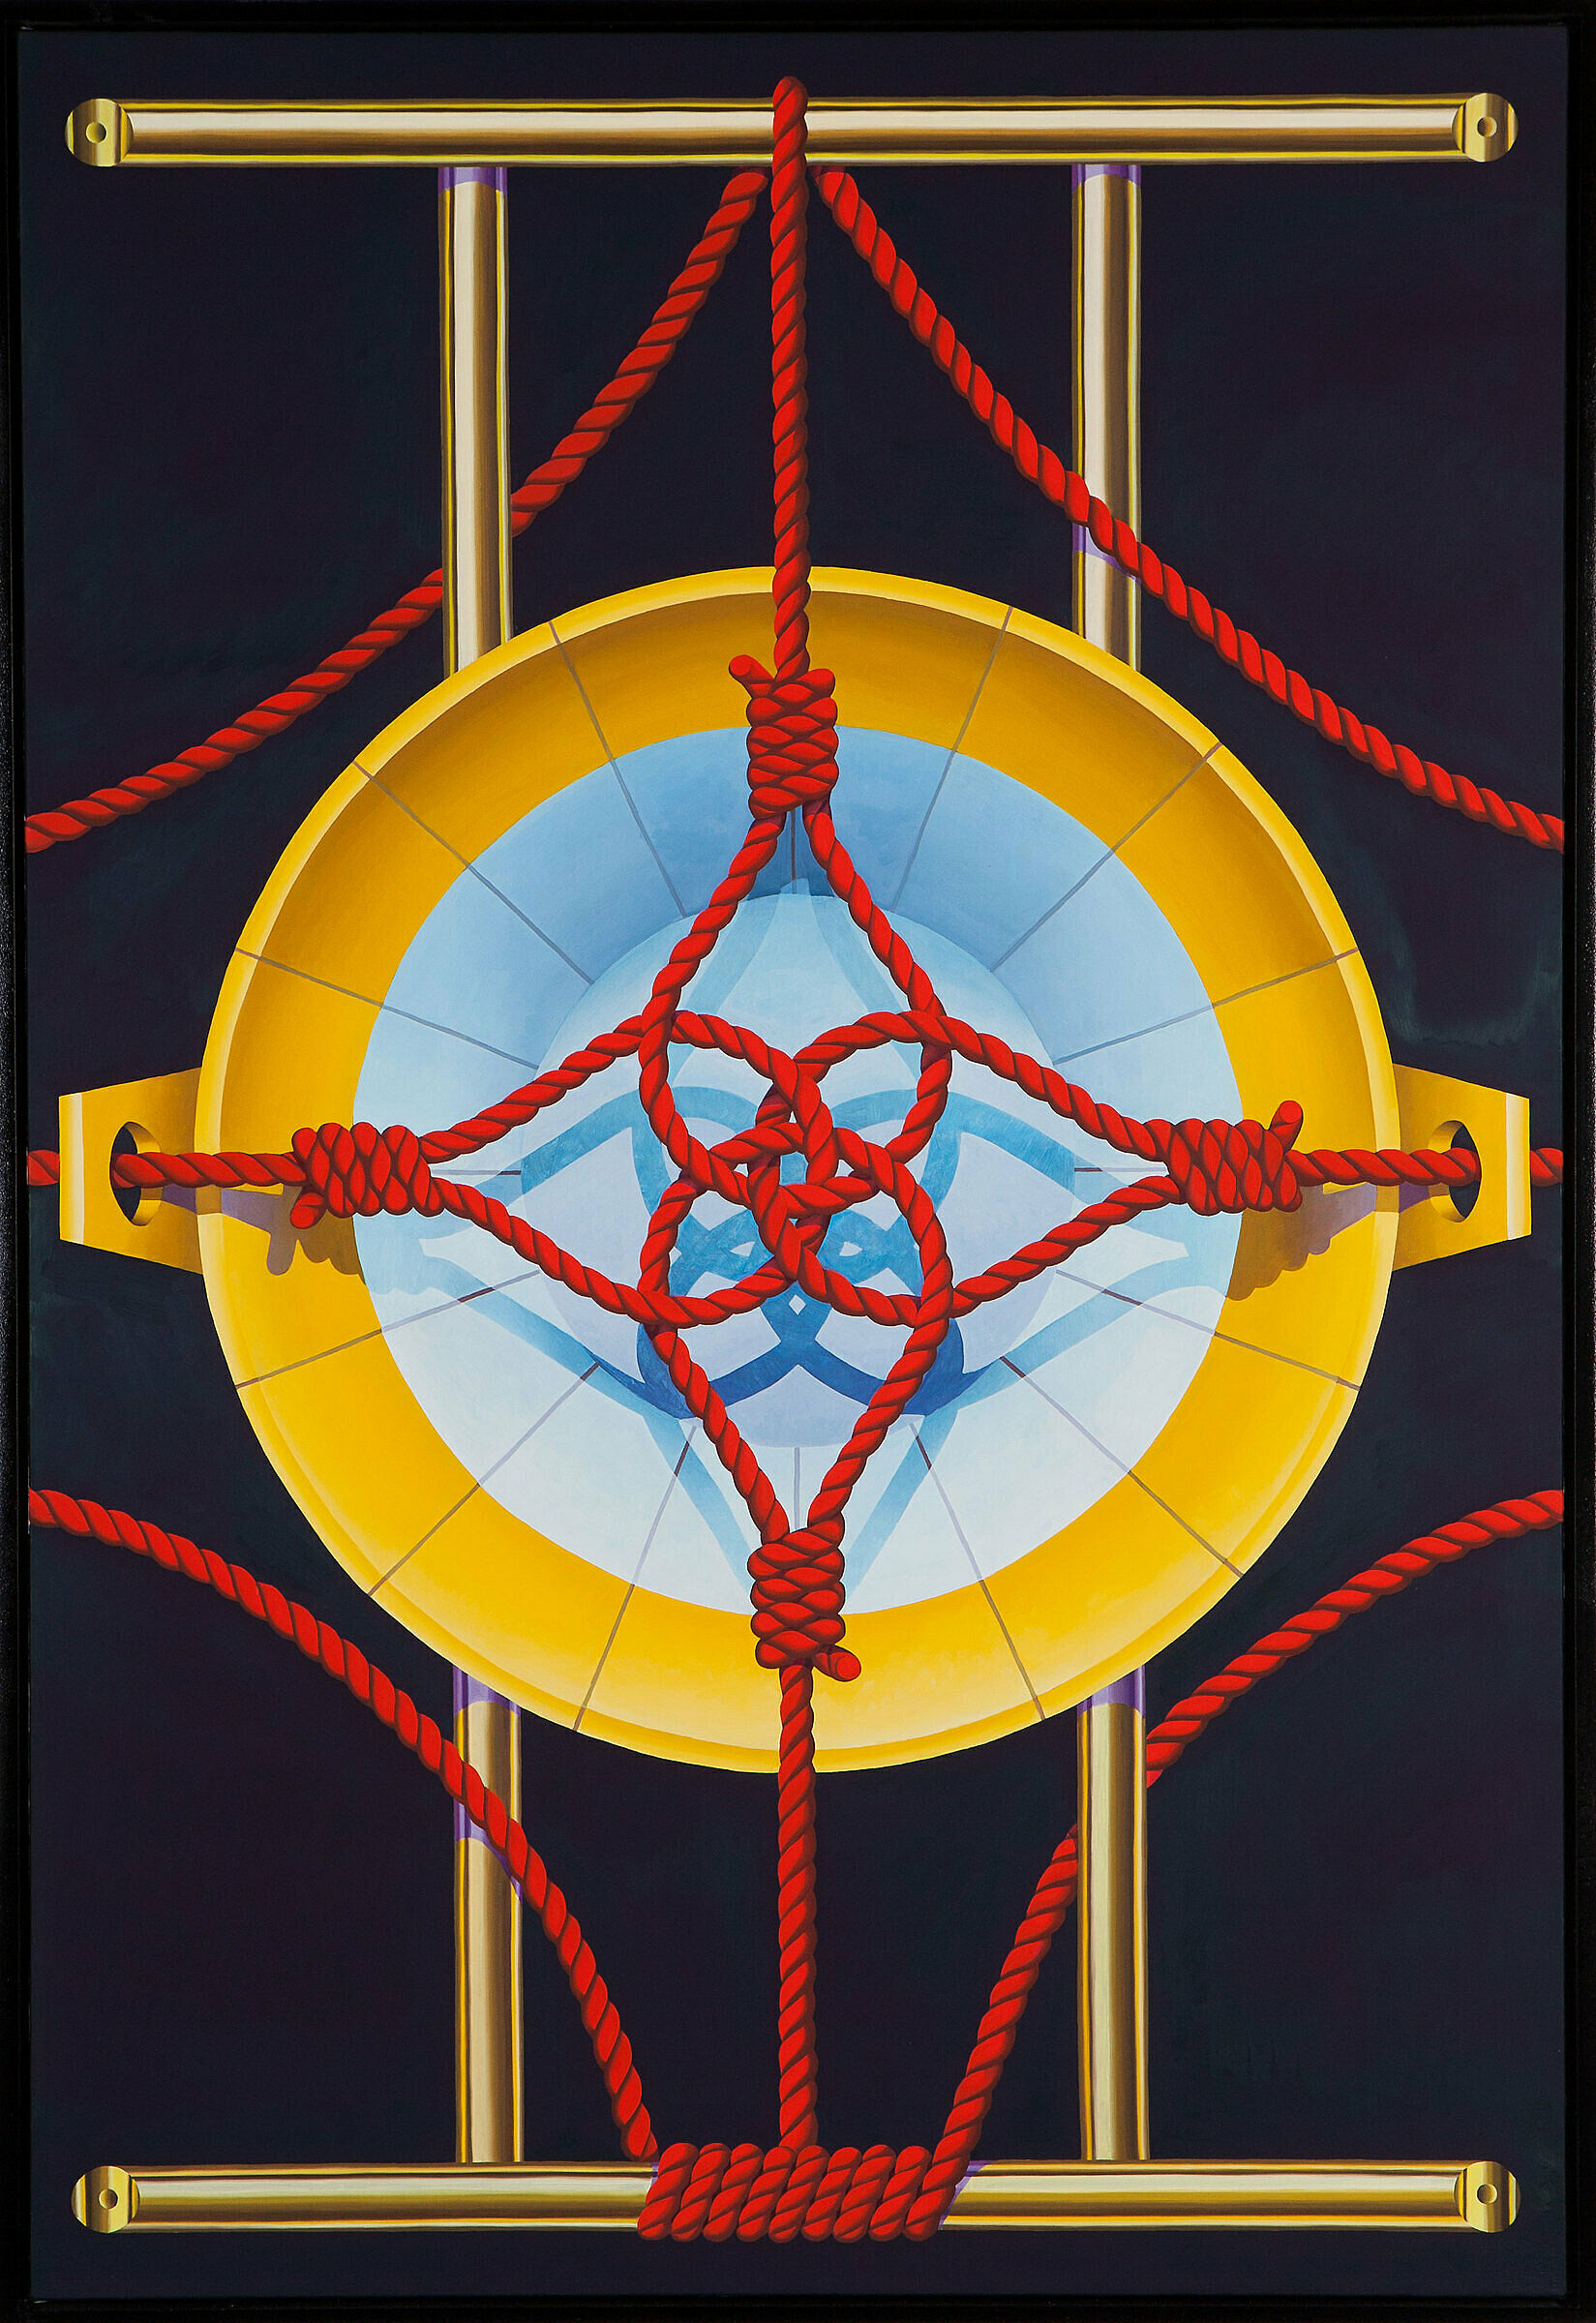 Painting of ropes in front of a plate.